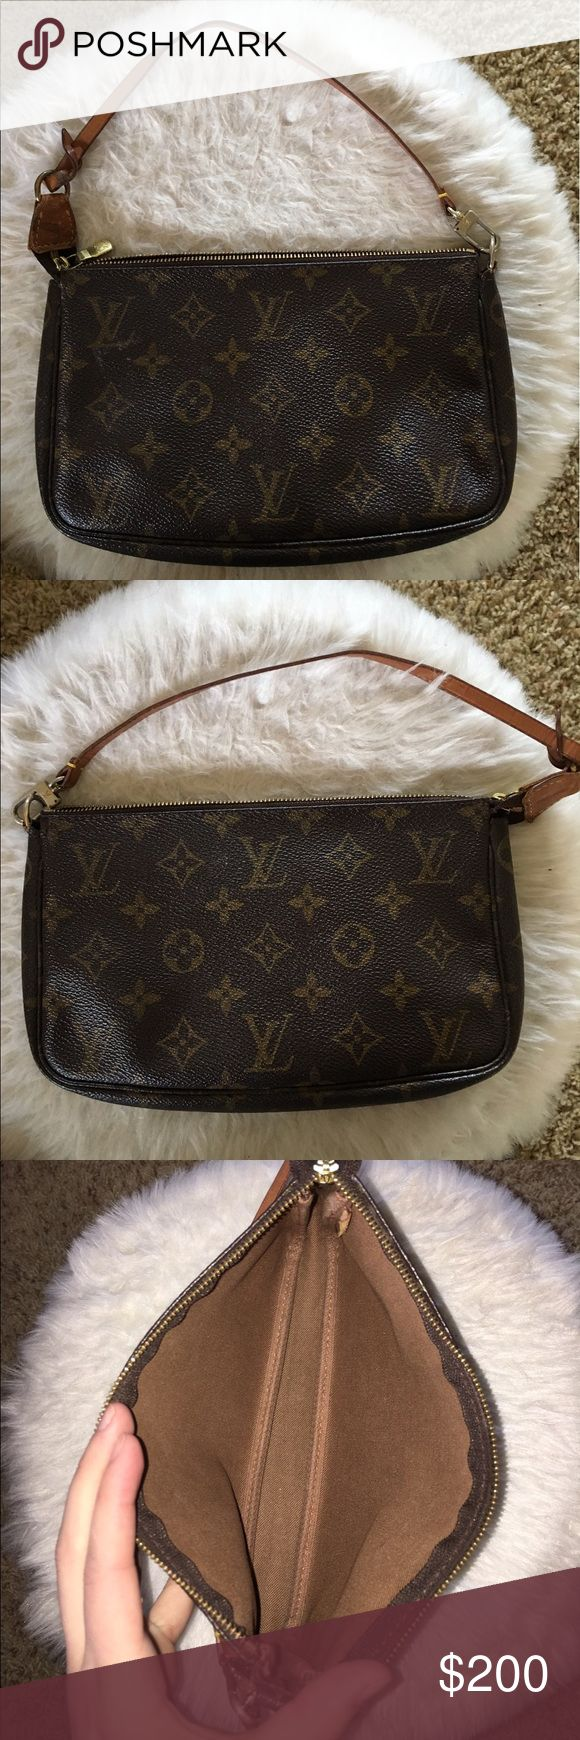 Authentic Monogram Pochette Accessories Clutch It's used aging color on the zipper. Super clean on the inside no bad odors or anything. No rips no scratches. Zipper works perfectly. Just discoloration. Super cute to go on dates. Strap is in really good condition. Please no offers it's already at a low price ❌❌ Louis Vuitton Bags Clutches & Wristlets